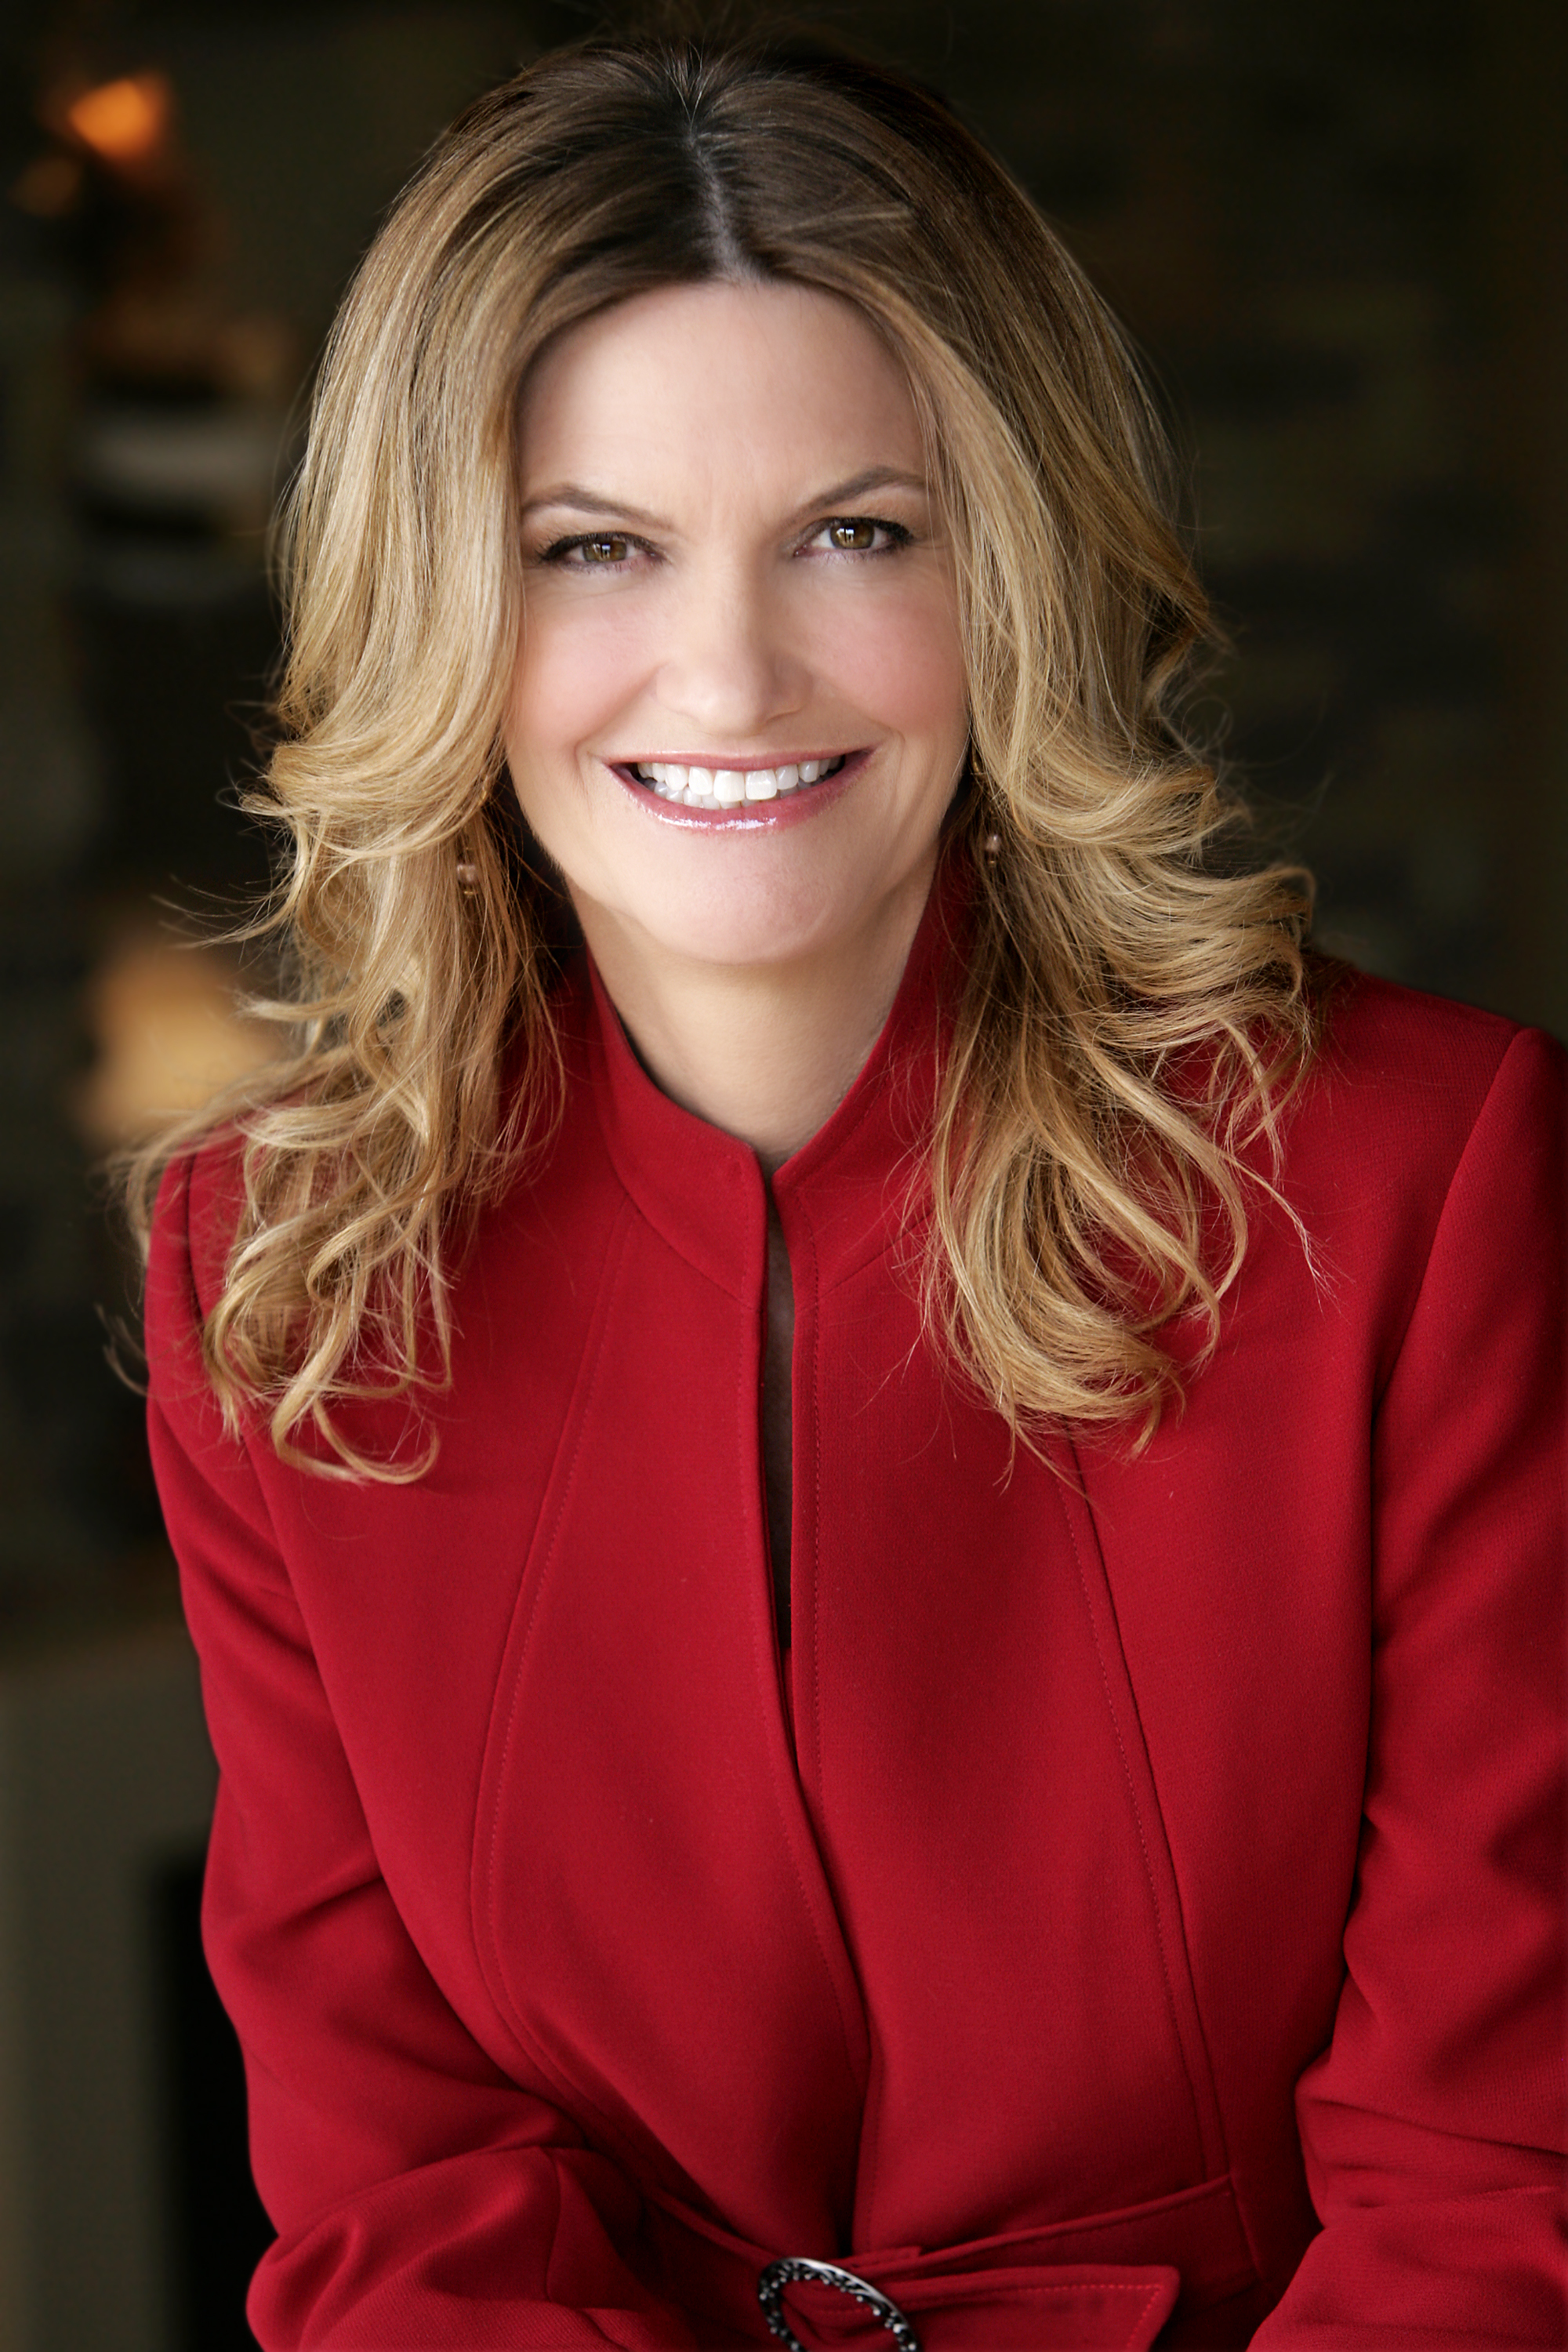 expert interview with sherri thomas on career coaching